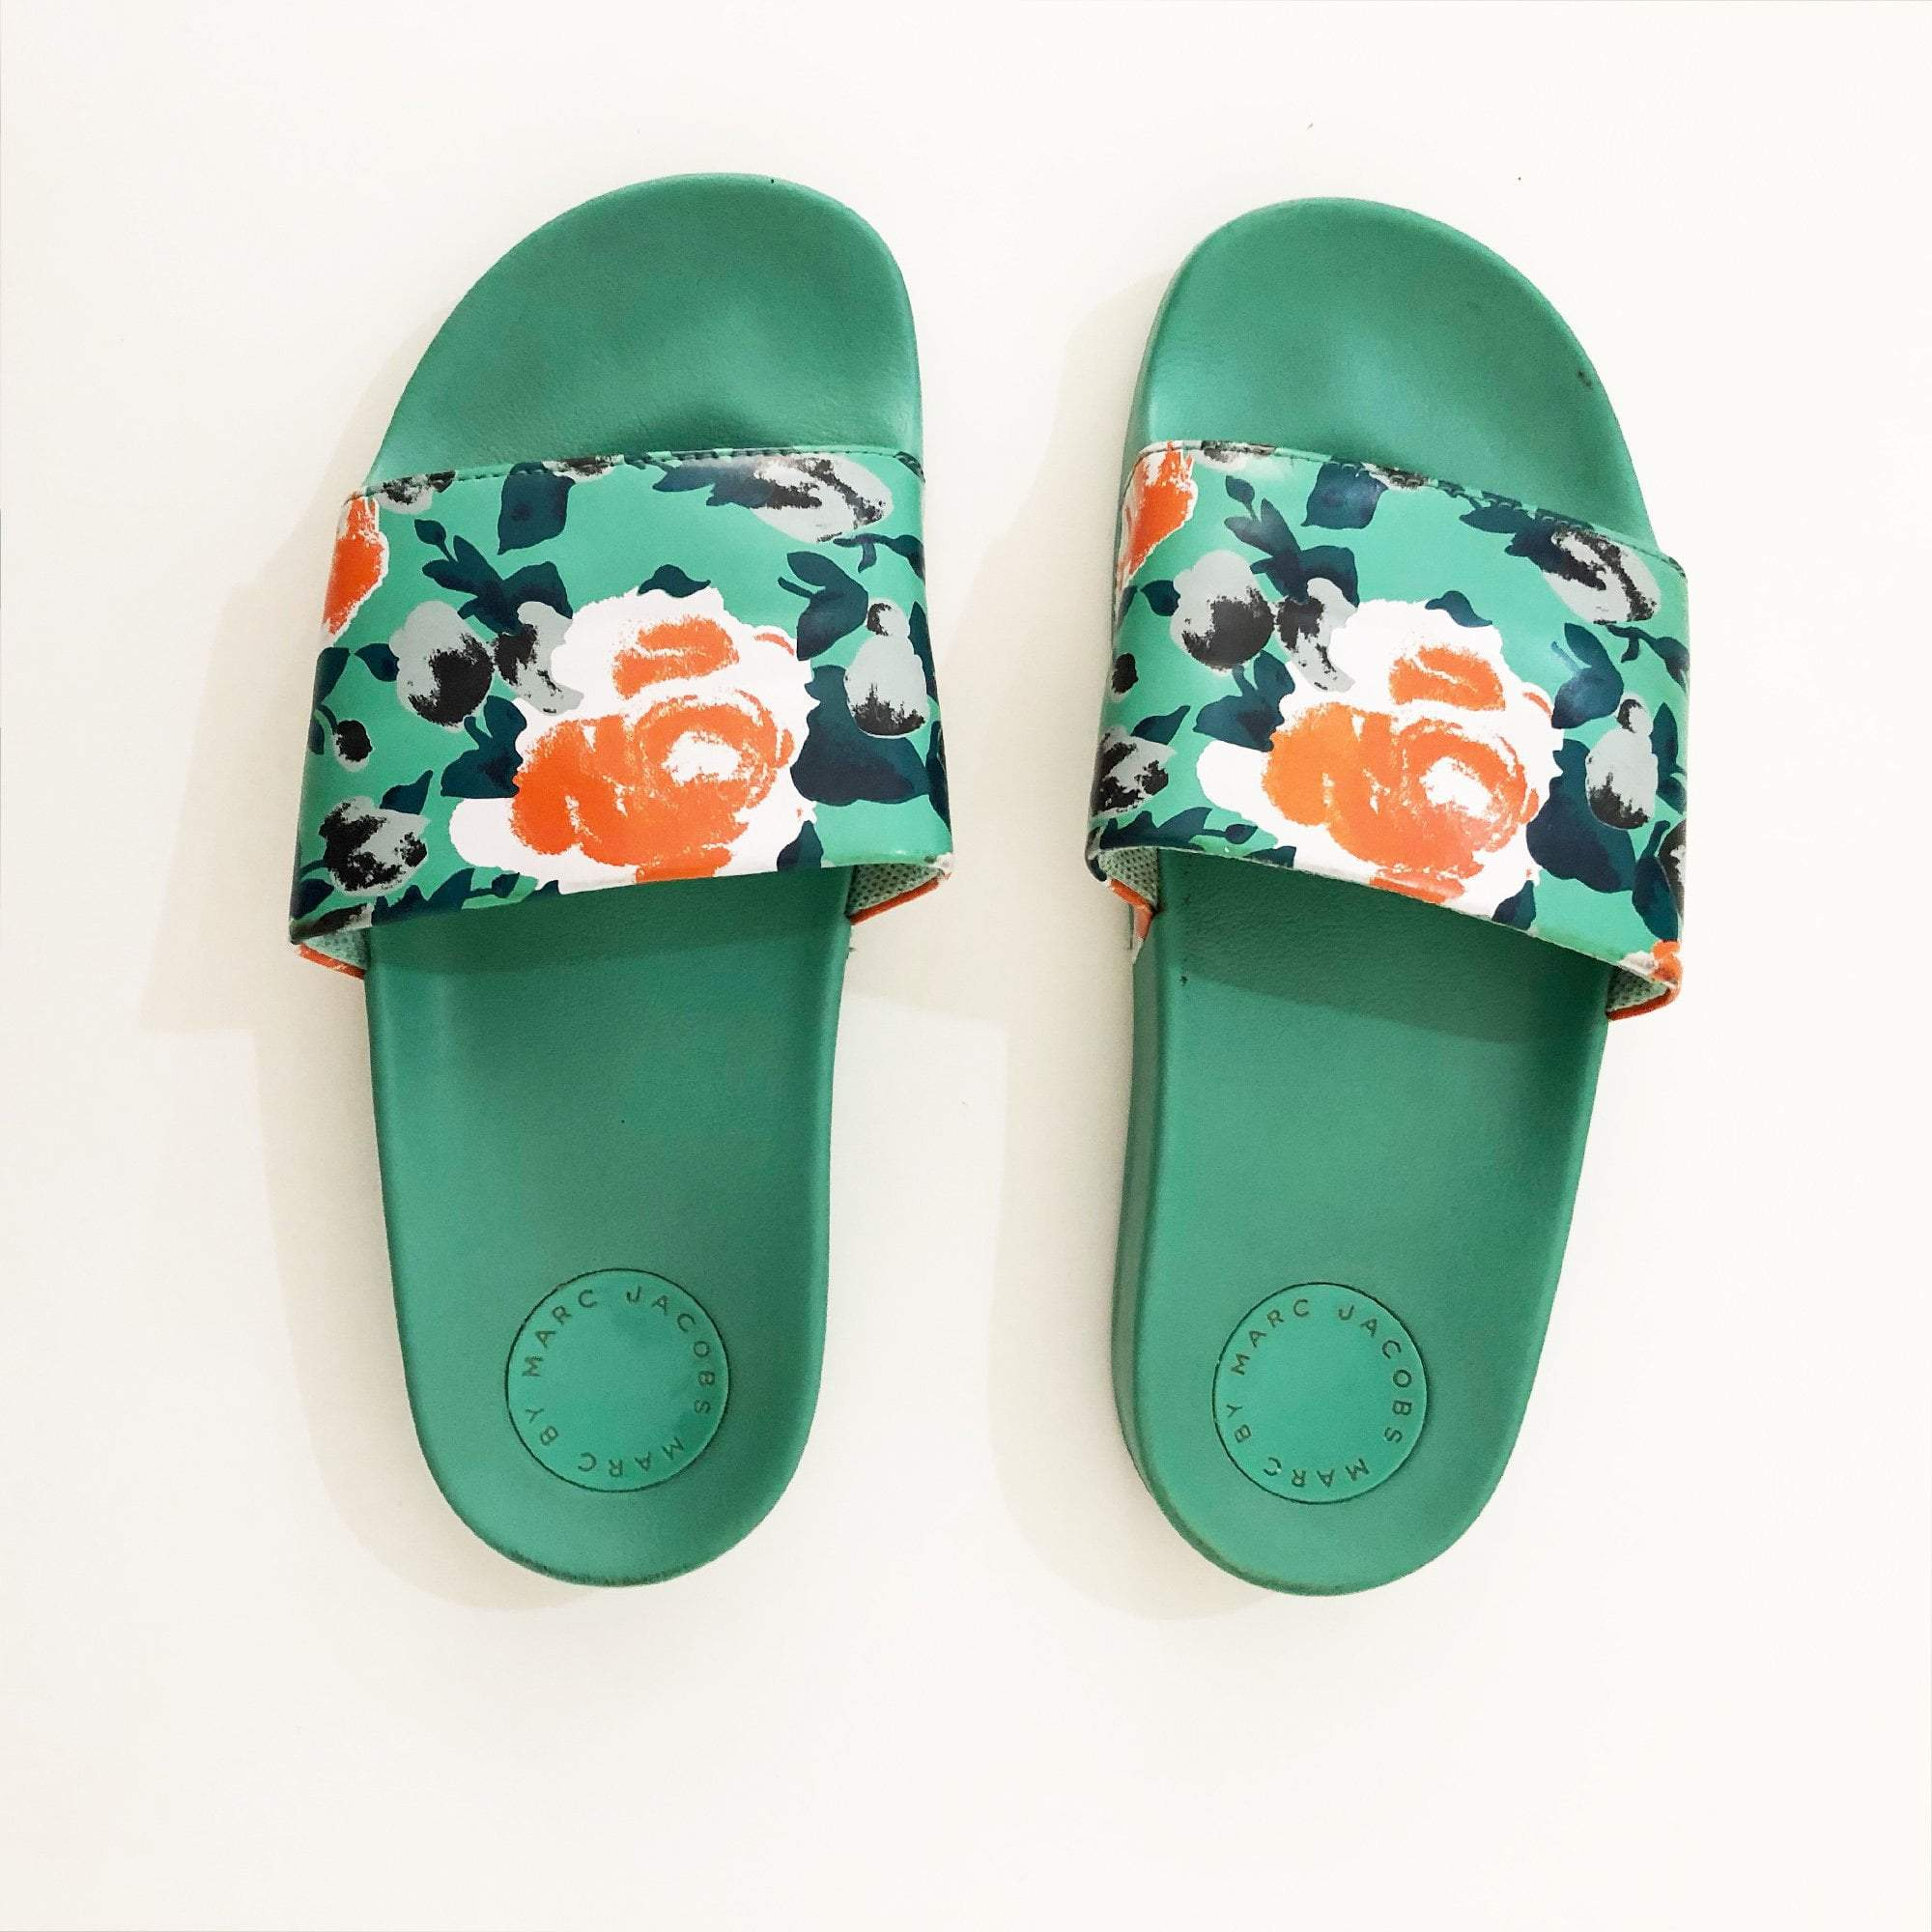 Marc Jacobs Floral-Print Slide Sandals